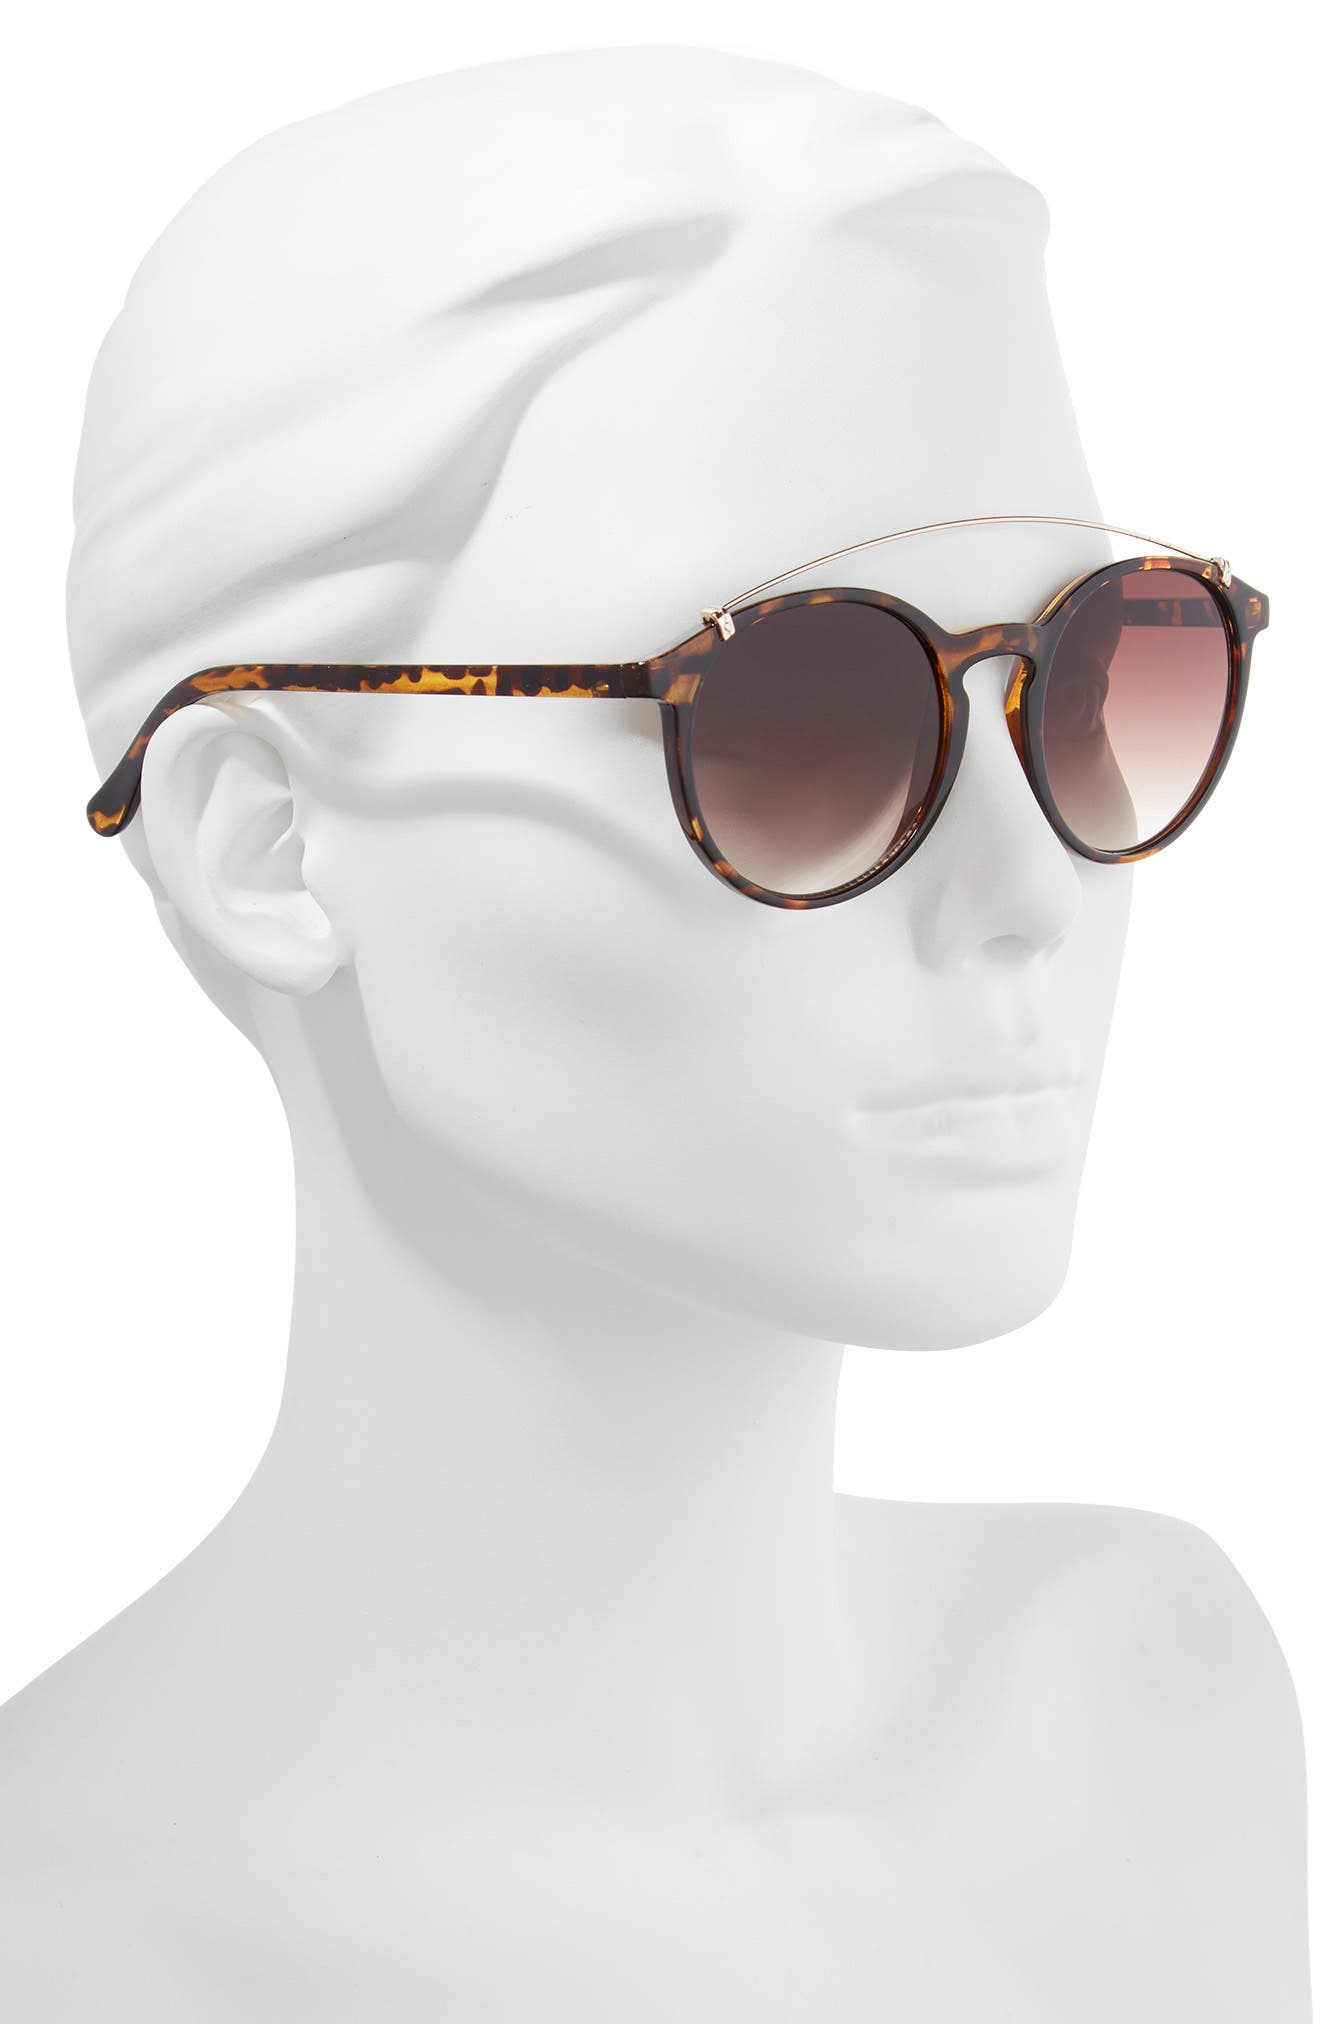 Round Aviator Sunglasses,                             Alternate thumbnail 2, color,                             200